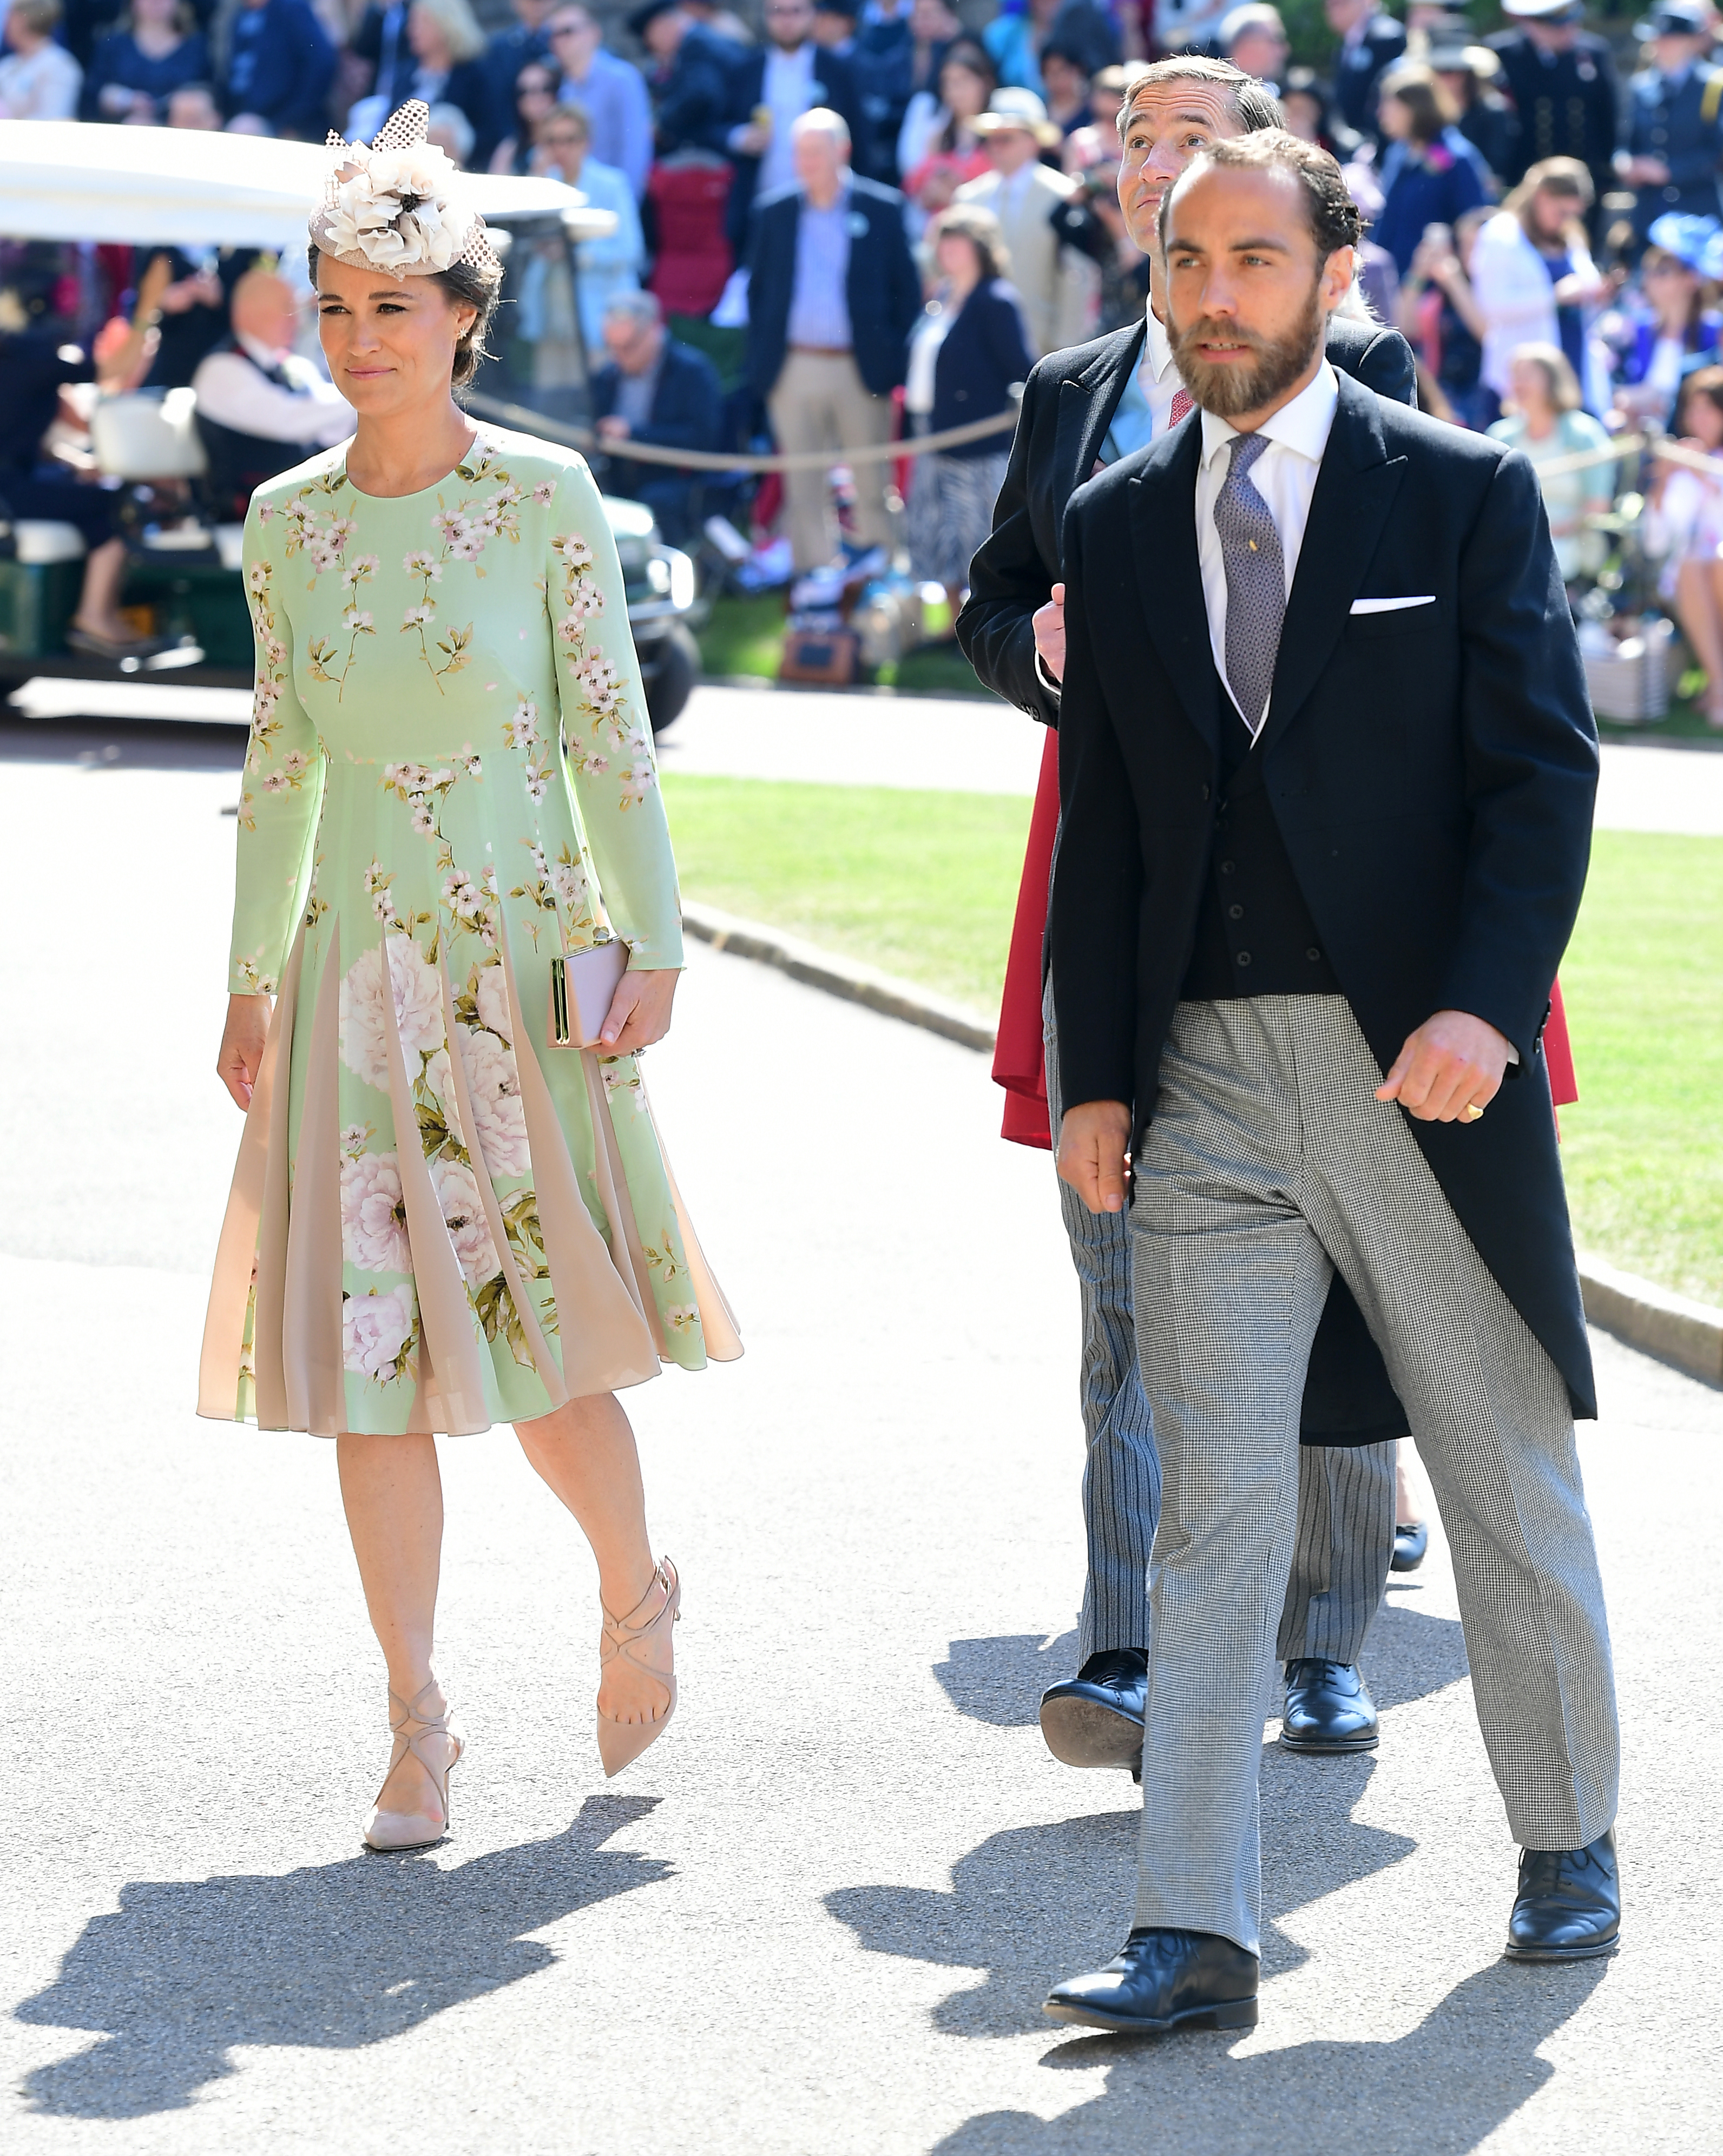 e837425241a Pippa Middleton and James Middleton arrive at St George s Chapel at Windsor  Castle for the wedding